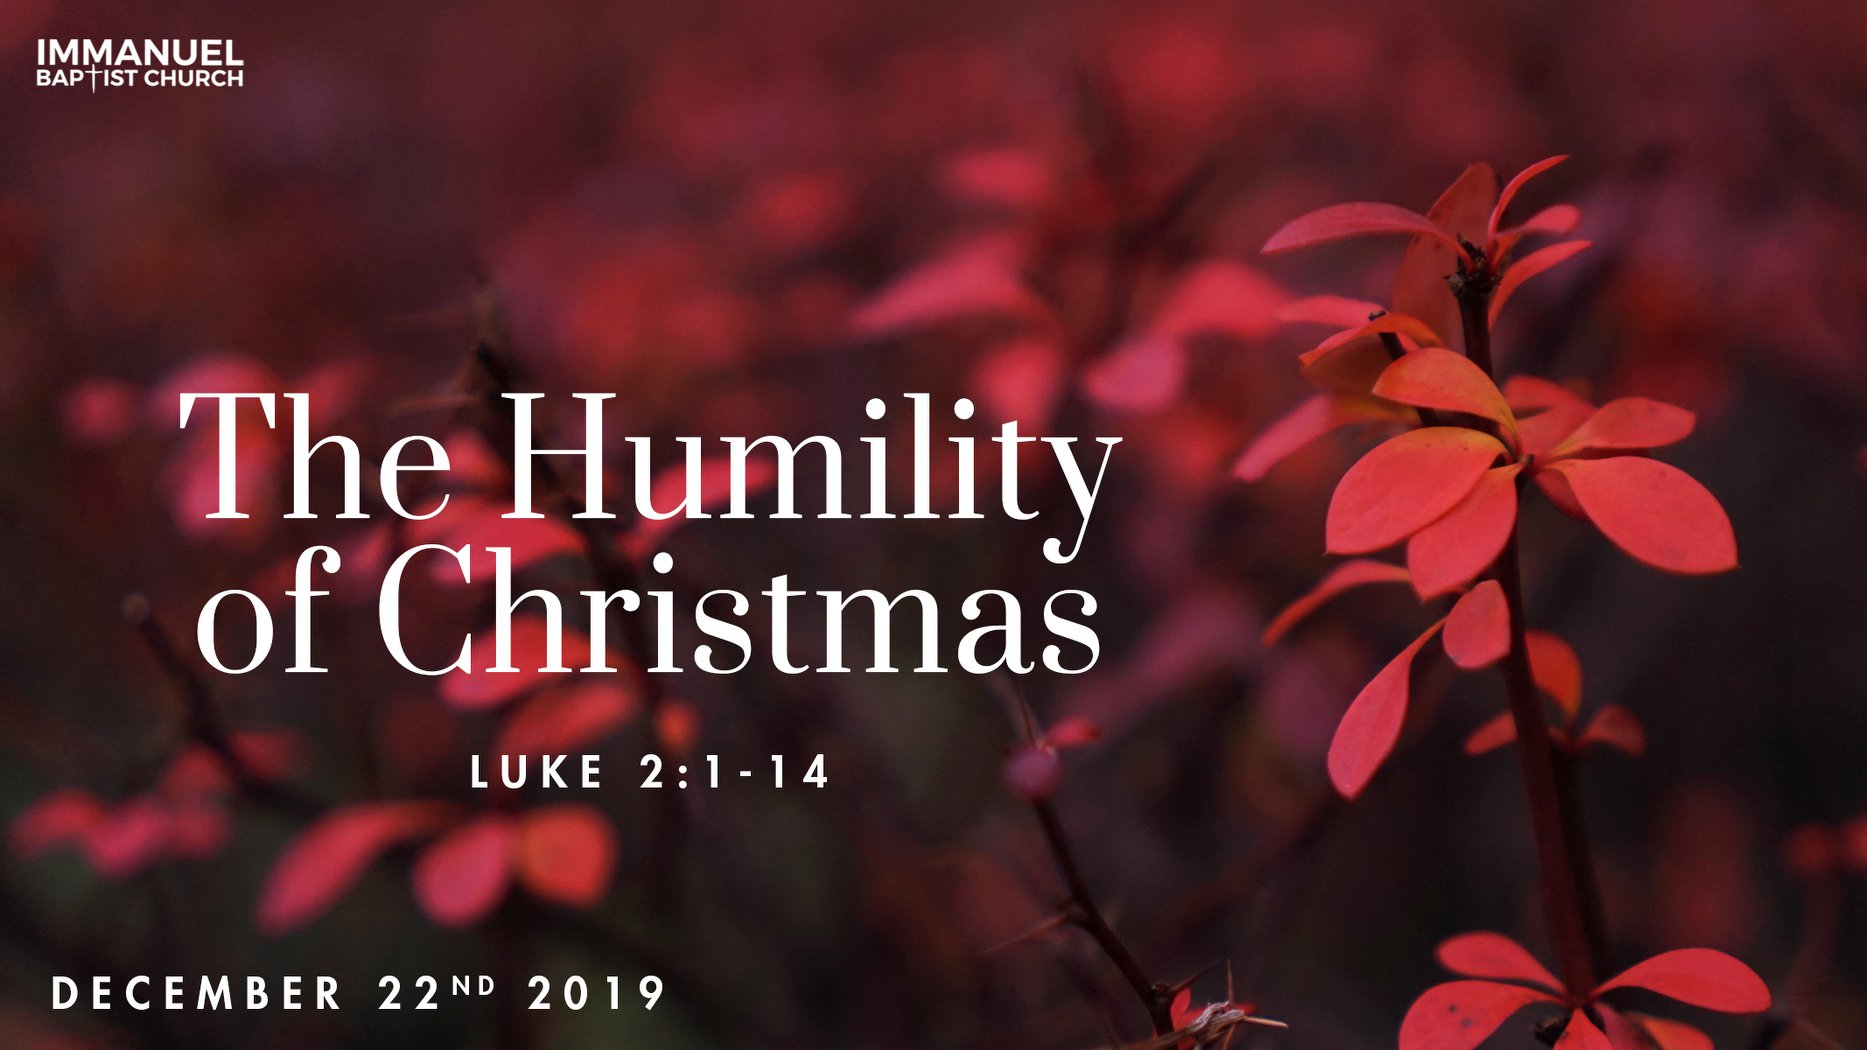 The Humility of Christmas (Luke 2:1-14)